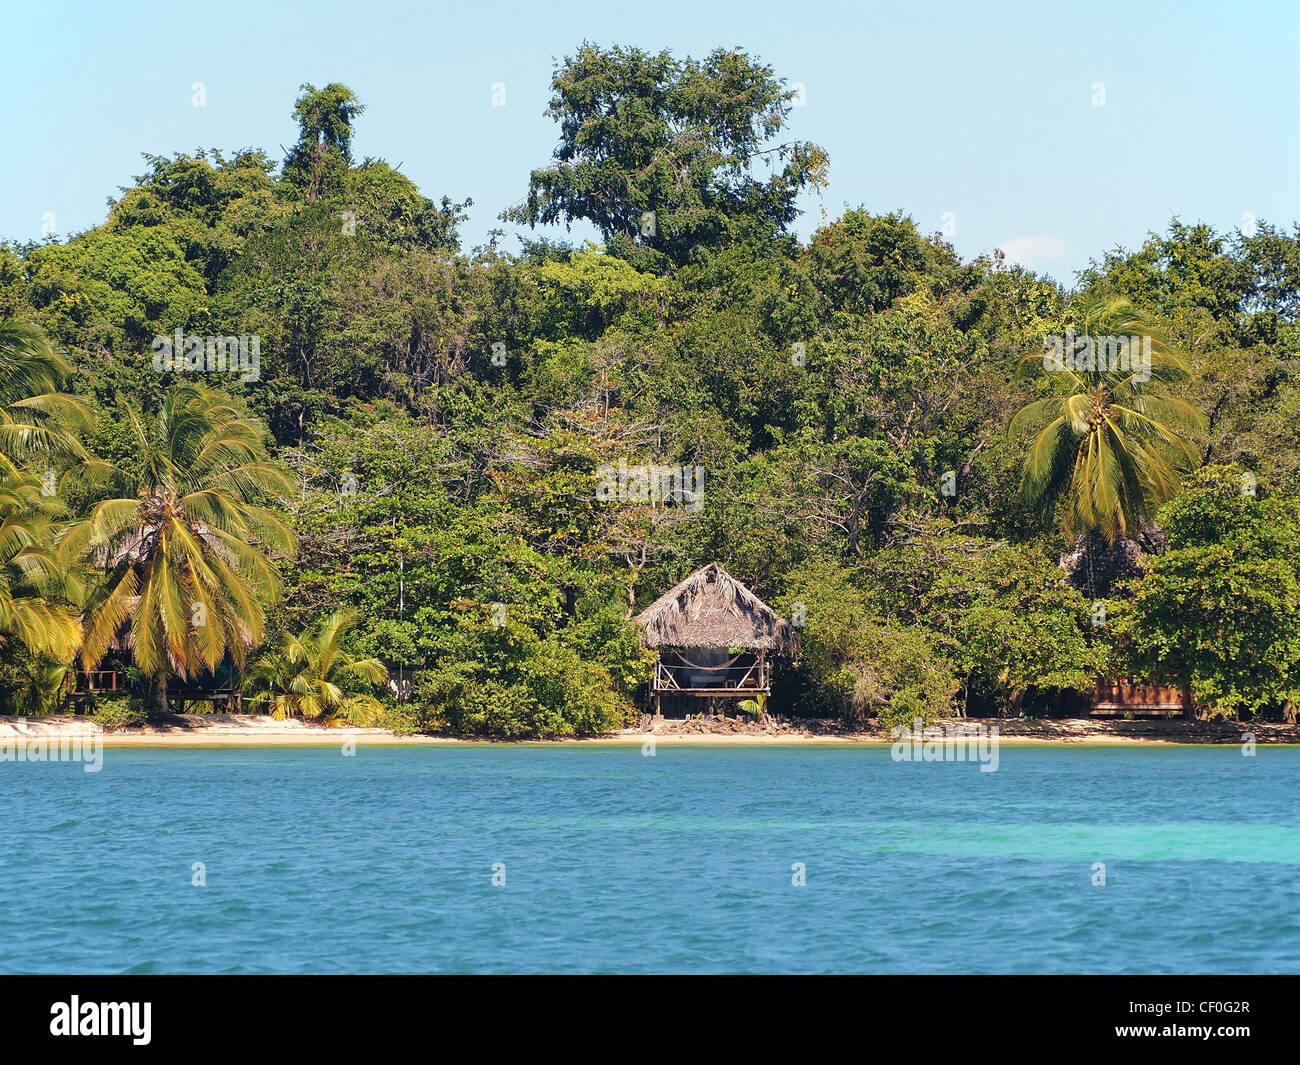 Landscape of tropical island beach with an open-air hut - Stock Image